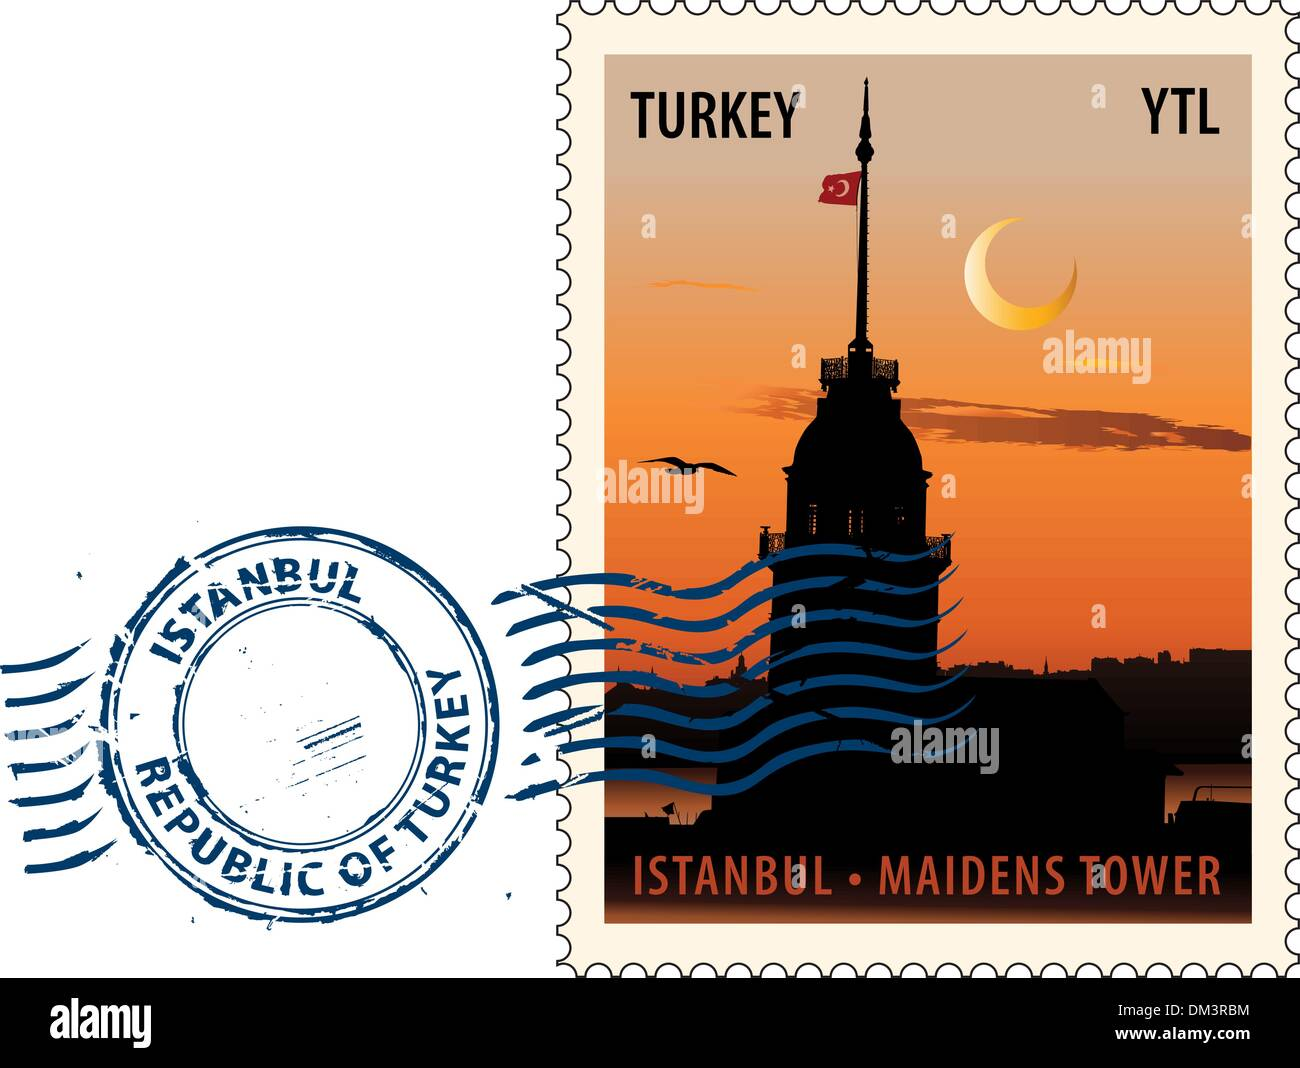 Postmark from Istanbul - Stock Image